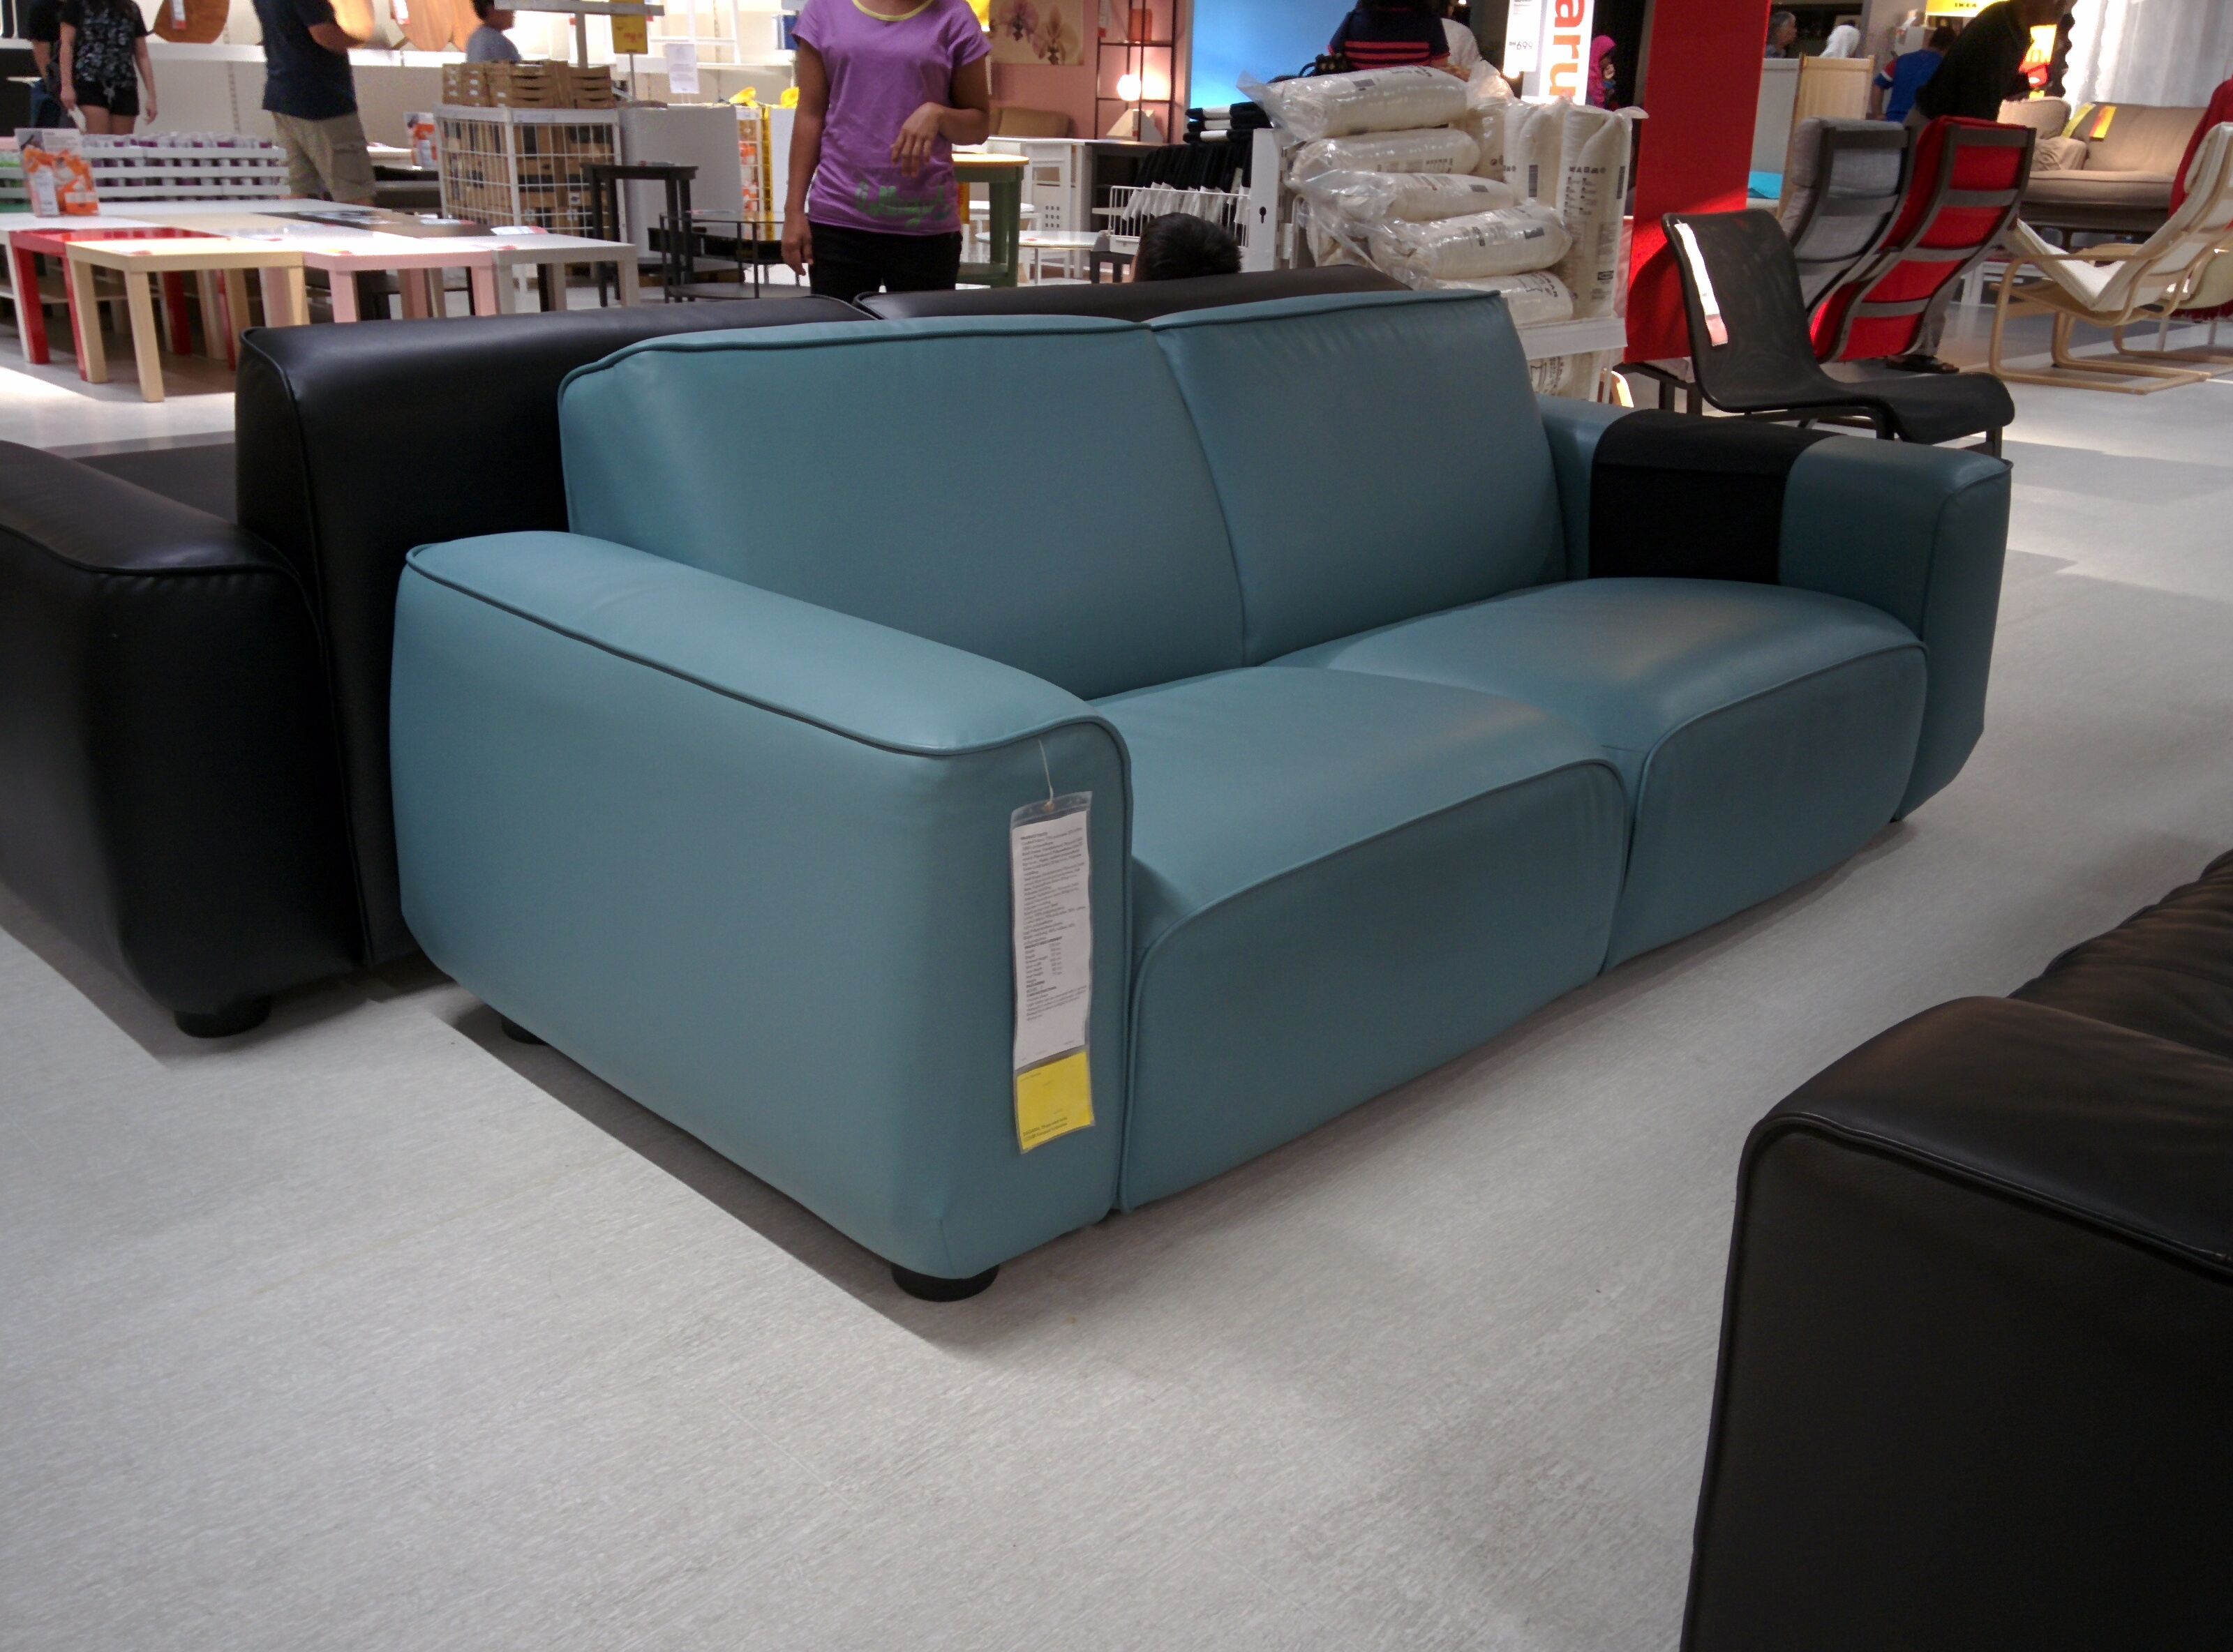 Bettsofa Ikea Blau The Dagarn Ikea Sofa Review